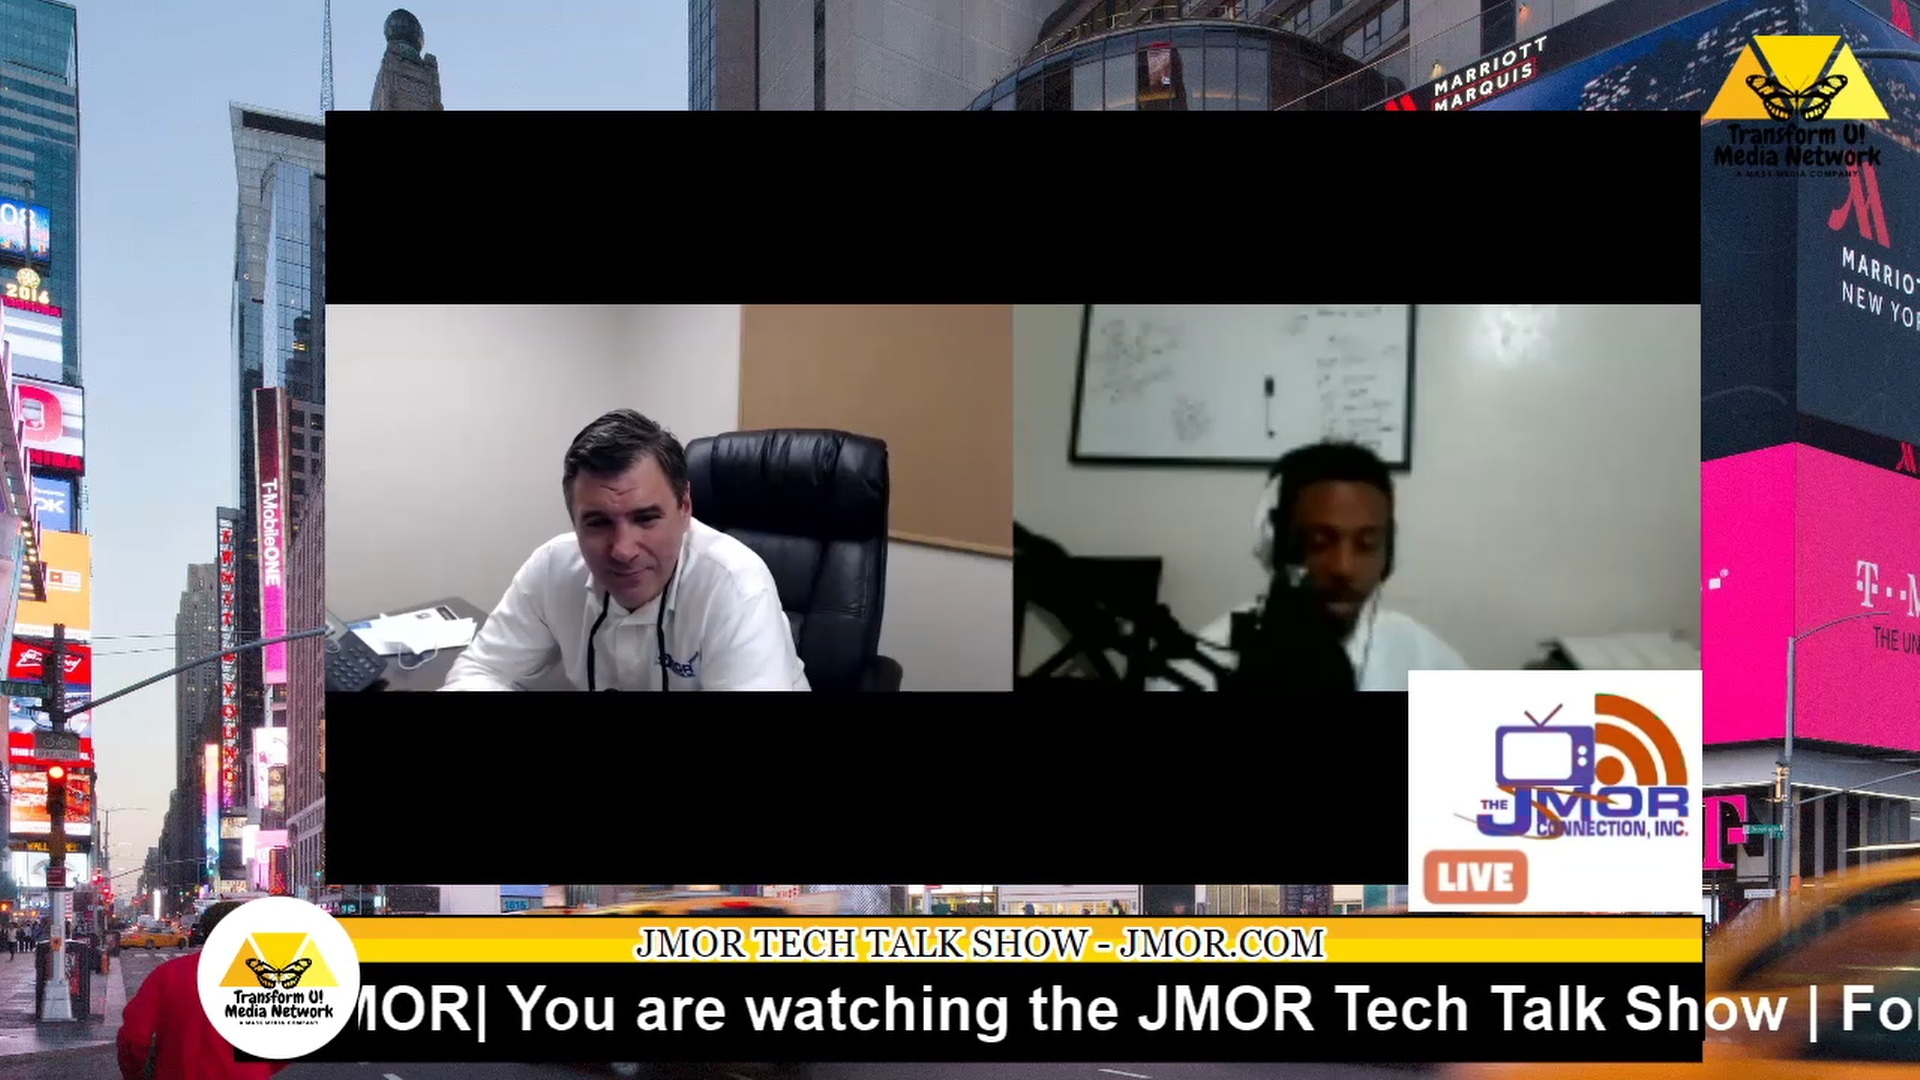 JMOR Tech Talk Show March 12, 2021:  Tech News Turning Waste into Something Useful